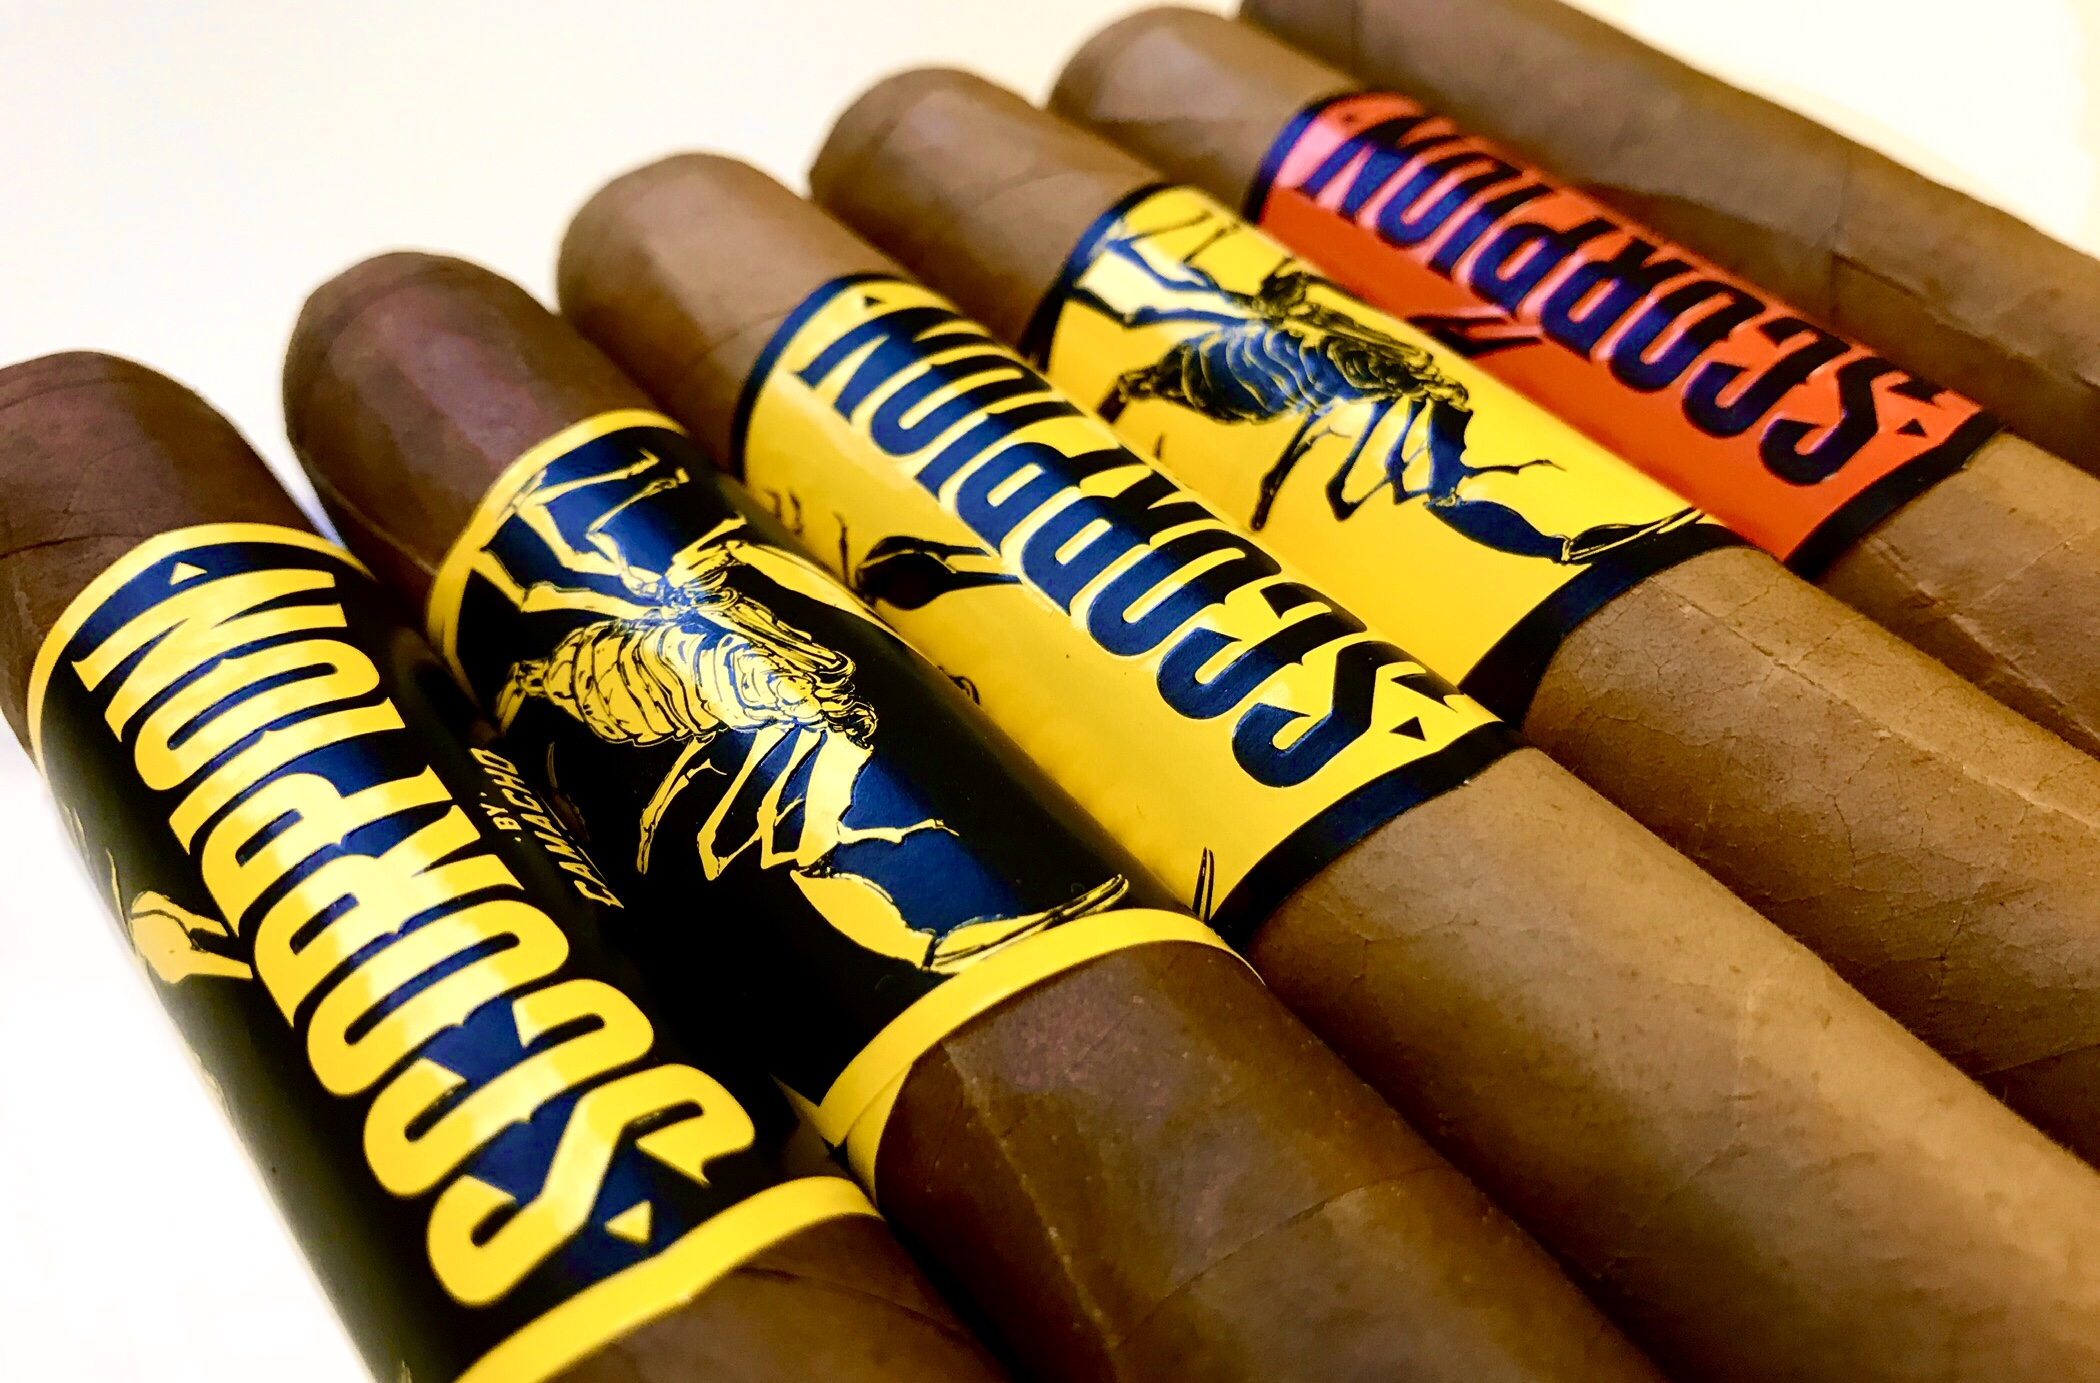 camacho scorpion cigars sampler image